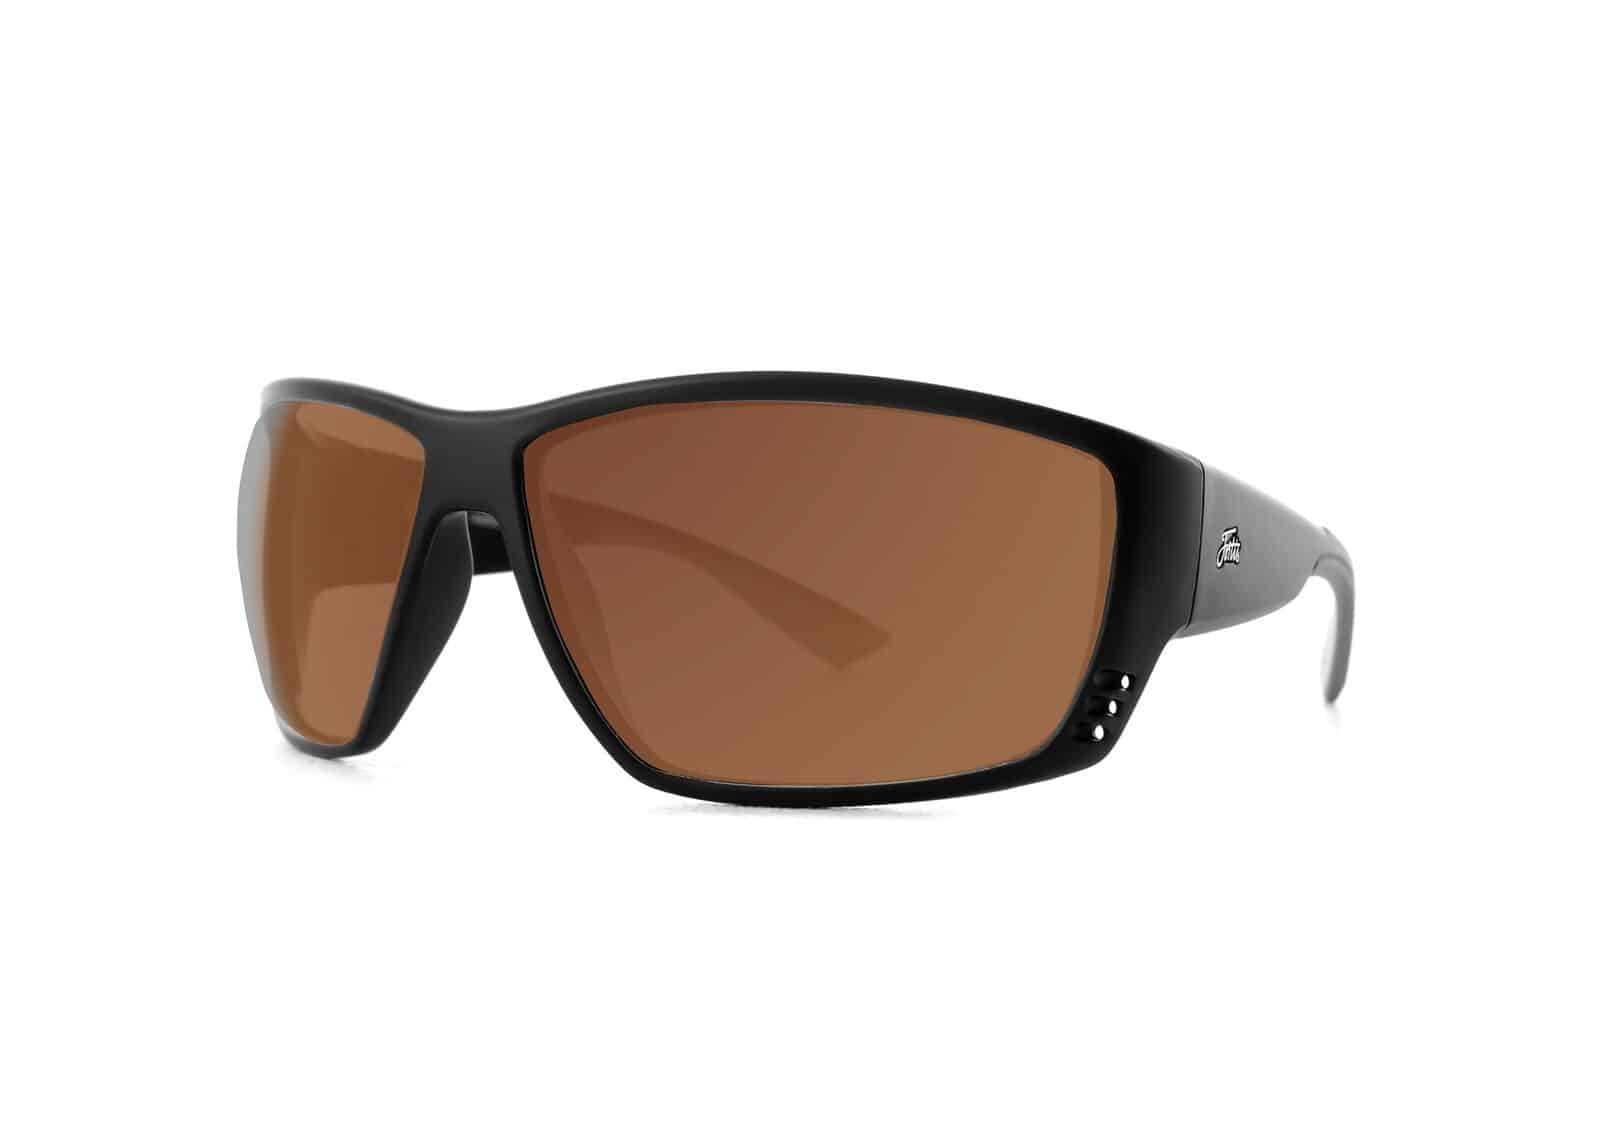 Fortis Vistas Brown Sunglasses